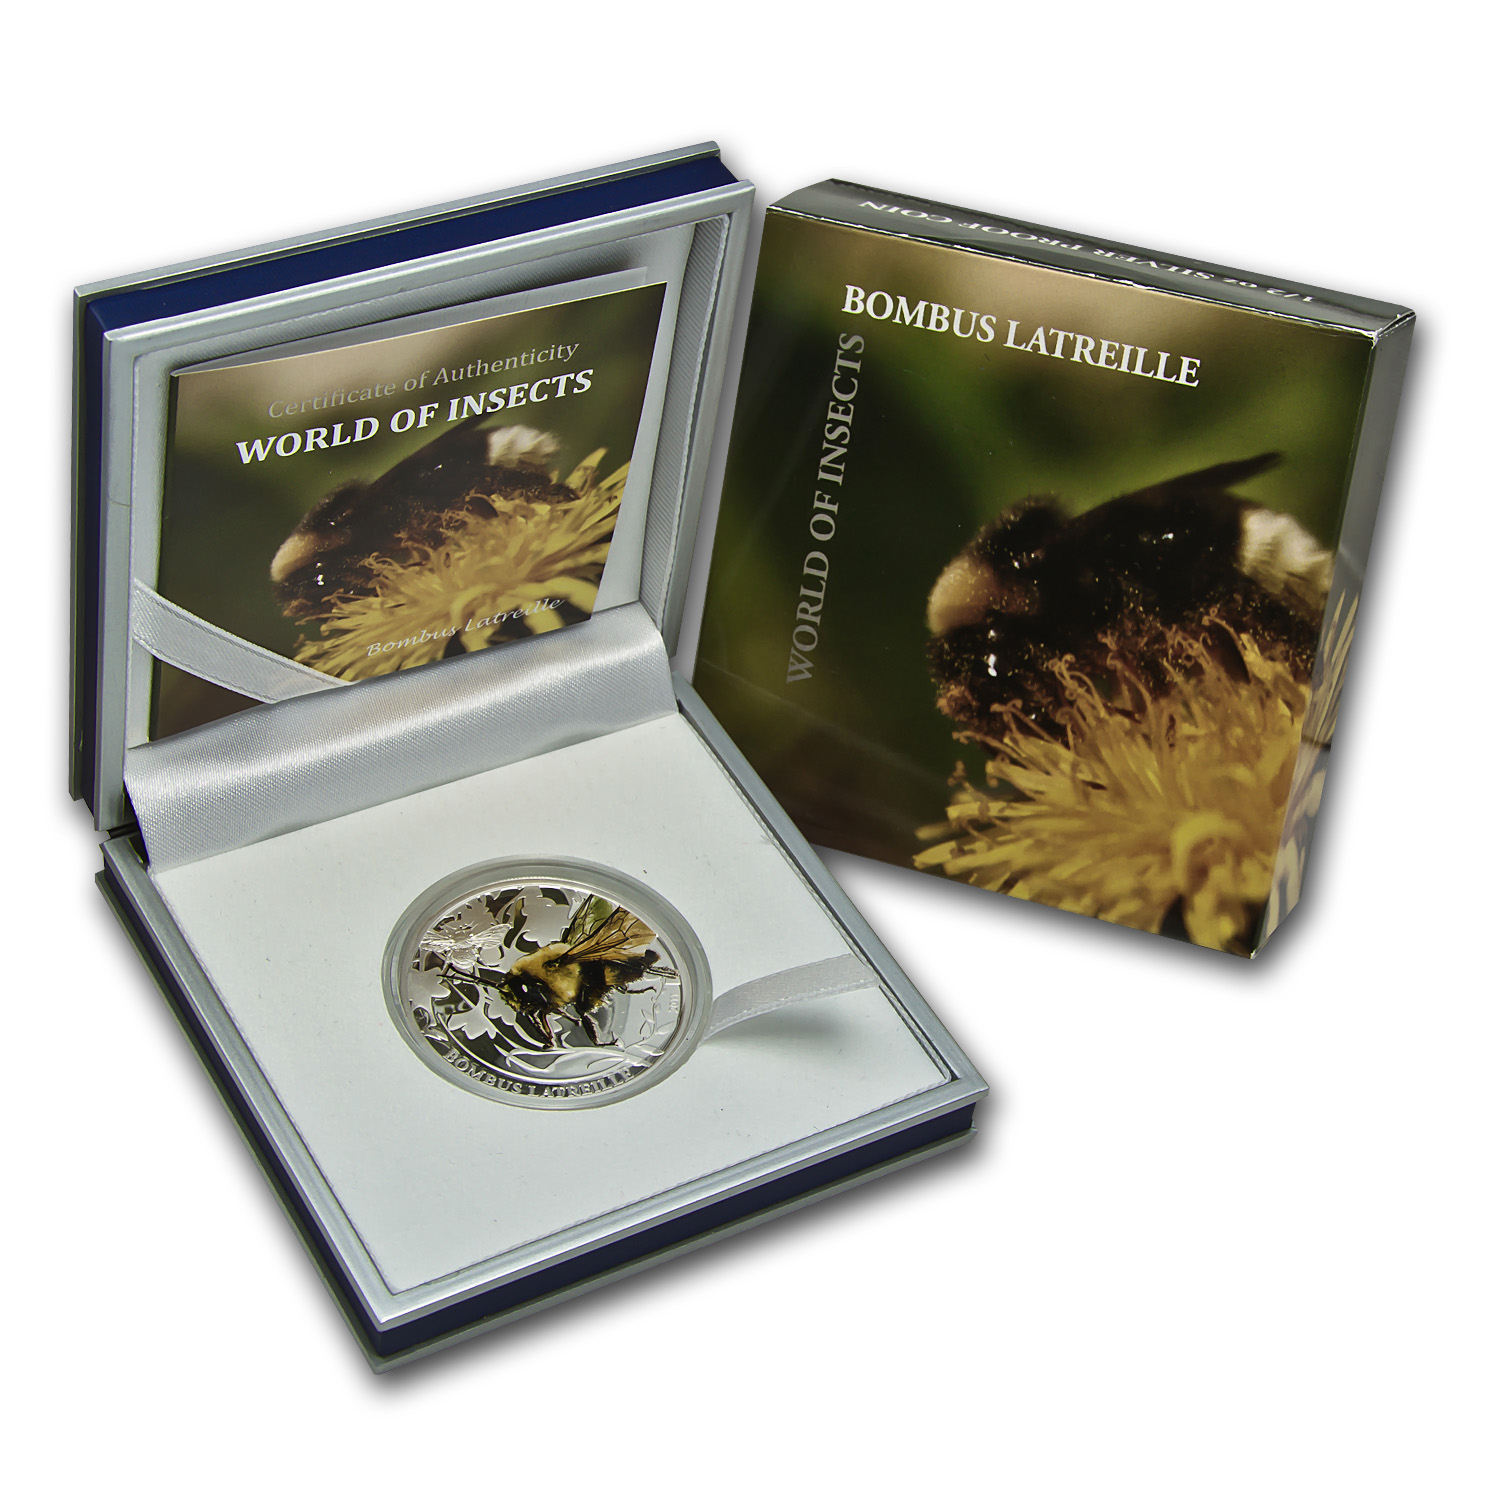 2011 Palau Silver $2 World of Insects Bombus Latreille Bumblebee